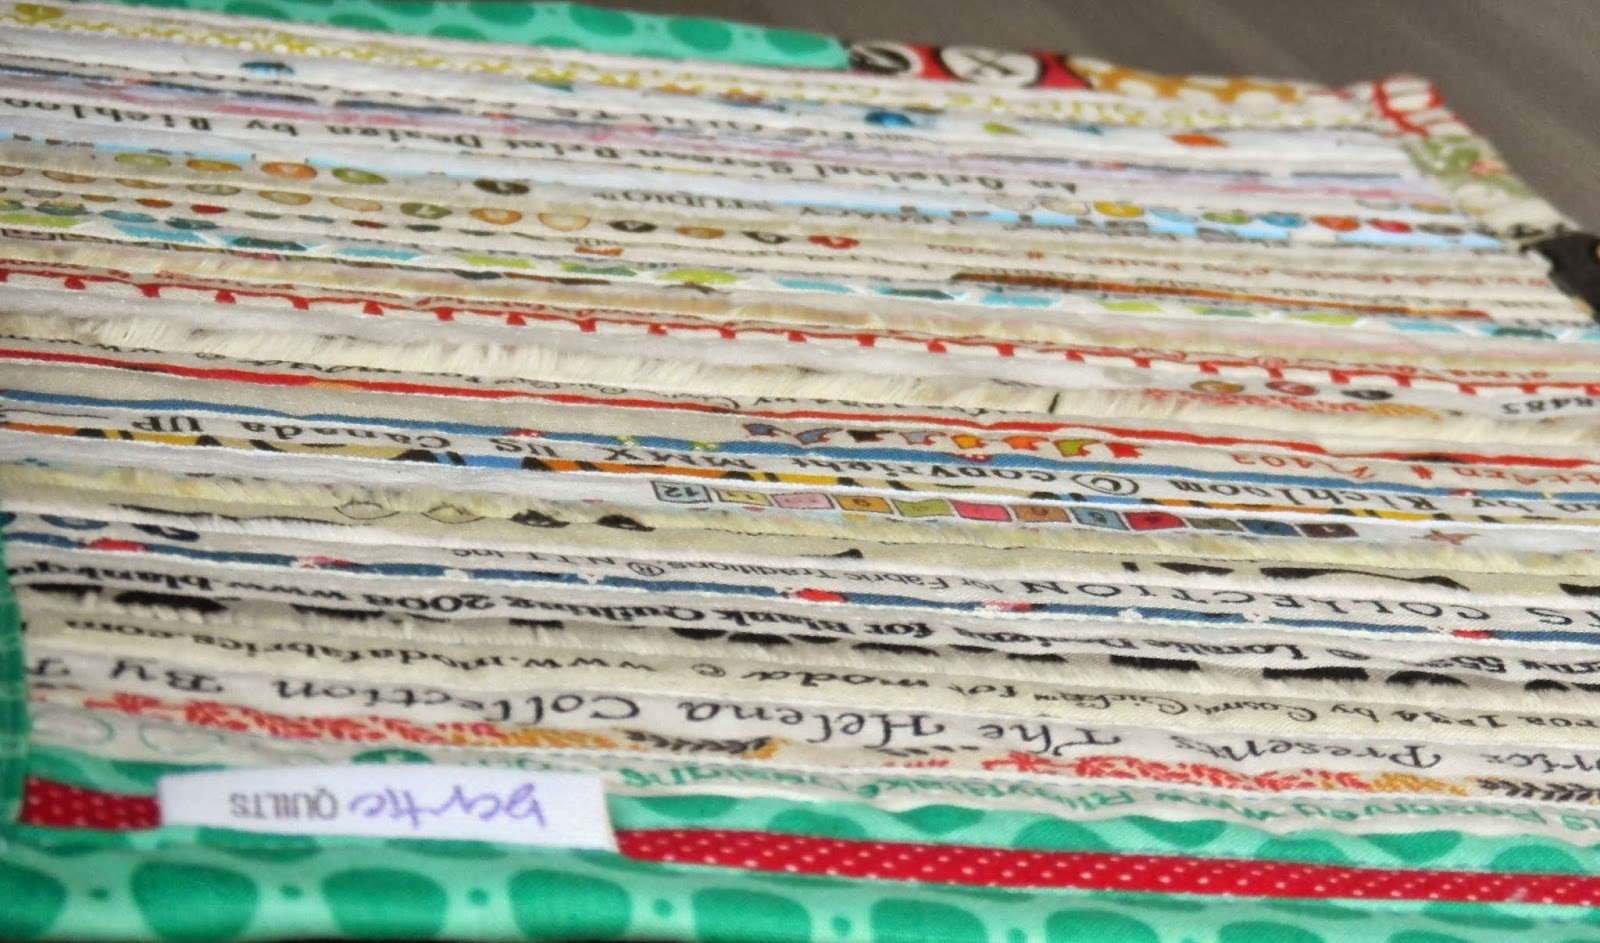 how to attah mats together to make a long mat